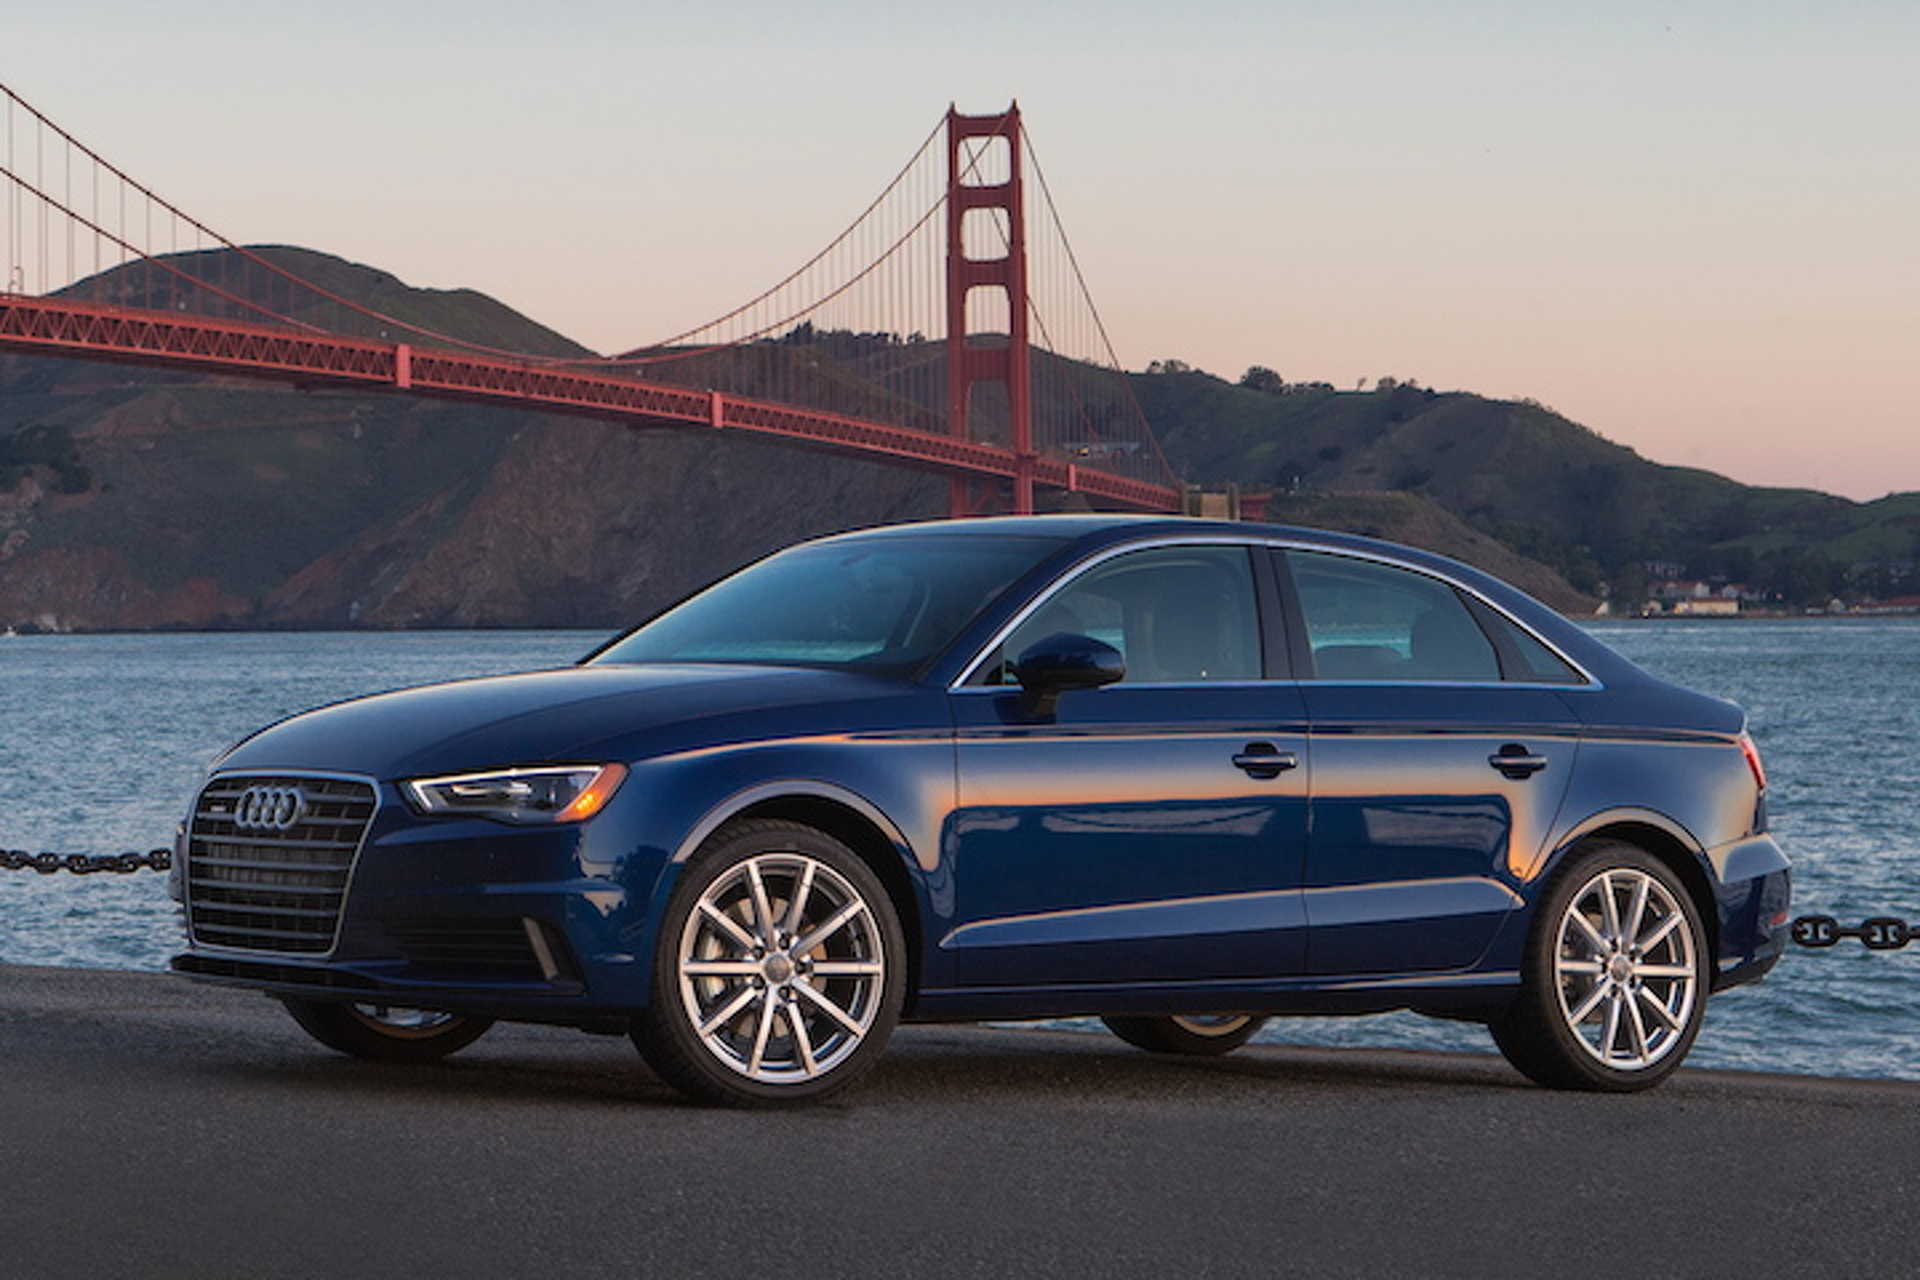 3 Things We Learned About the New Audi A3: Review